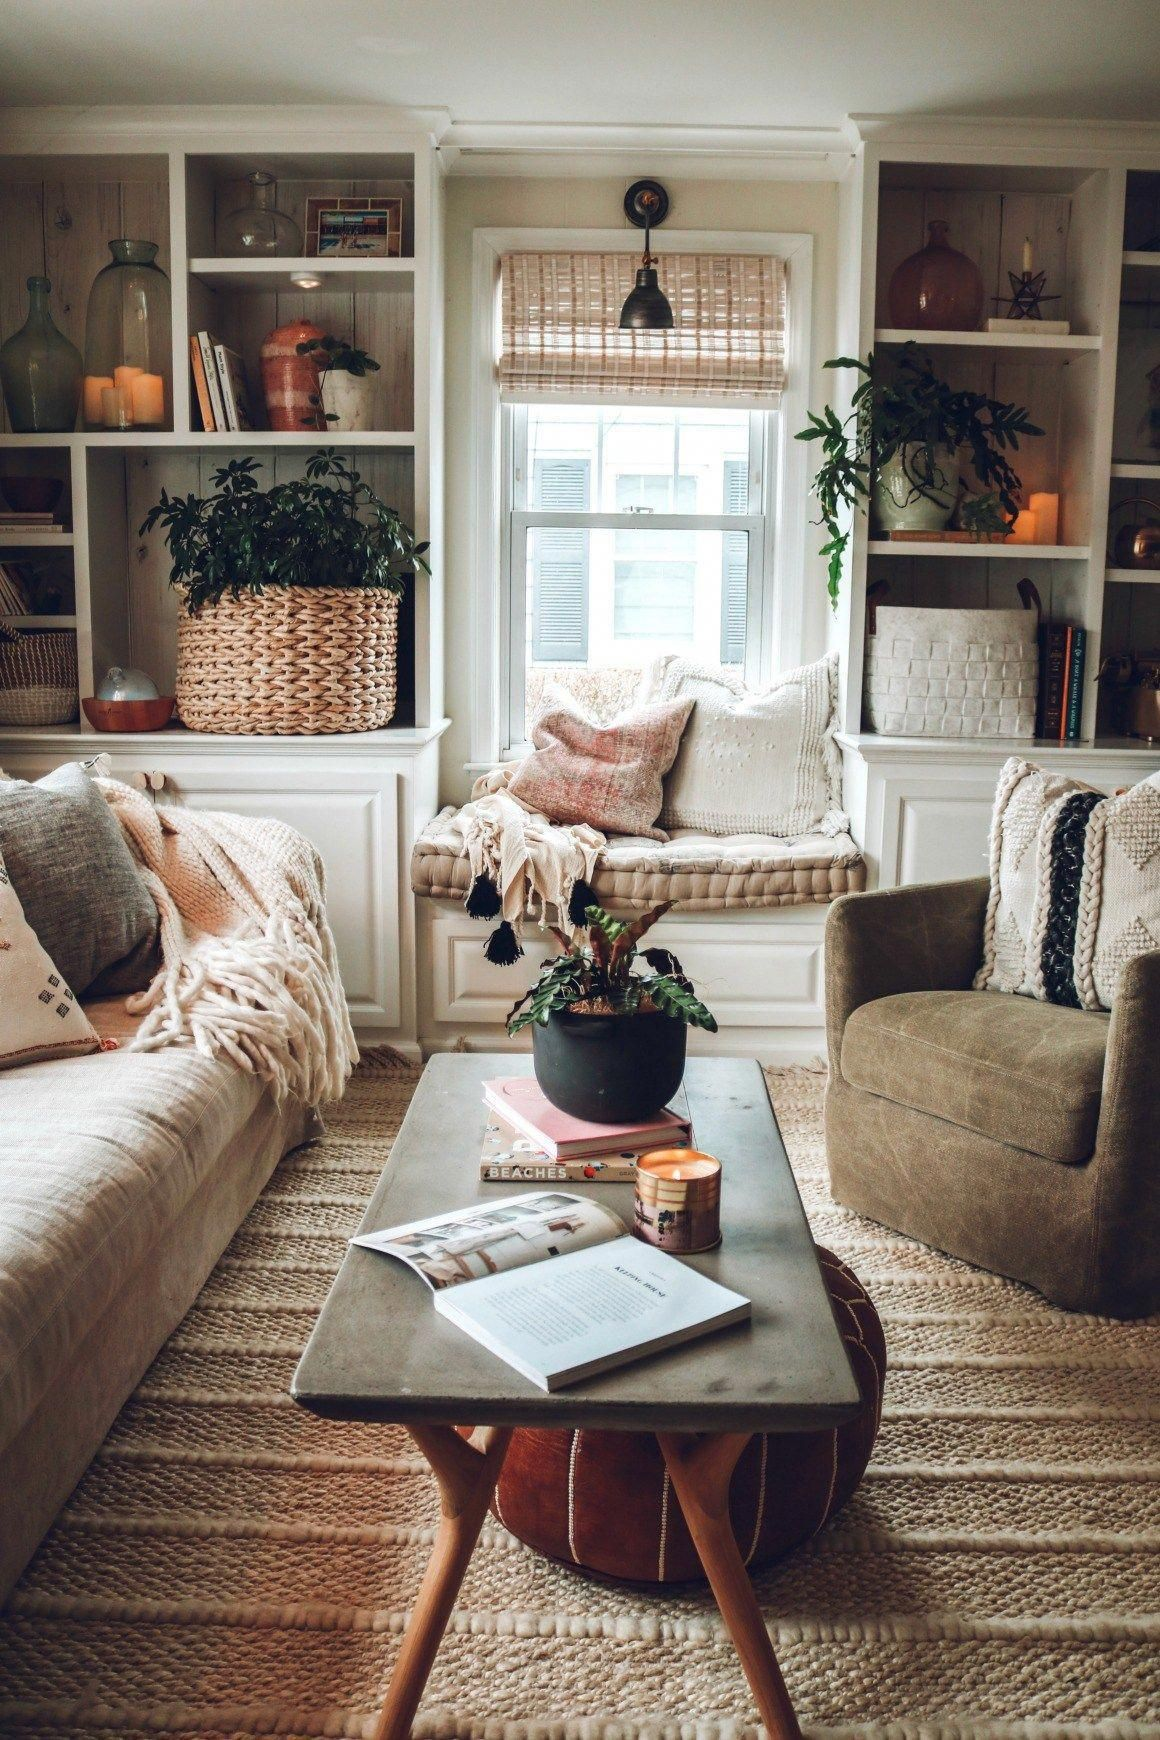 This Unique Living Room Black Is A Really Inspirational And Ideal Idea Livingroomblack Rugs In Living Room Small Living Rooms New Living Room #small #black #living #room